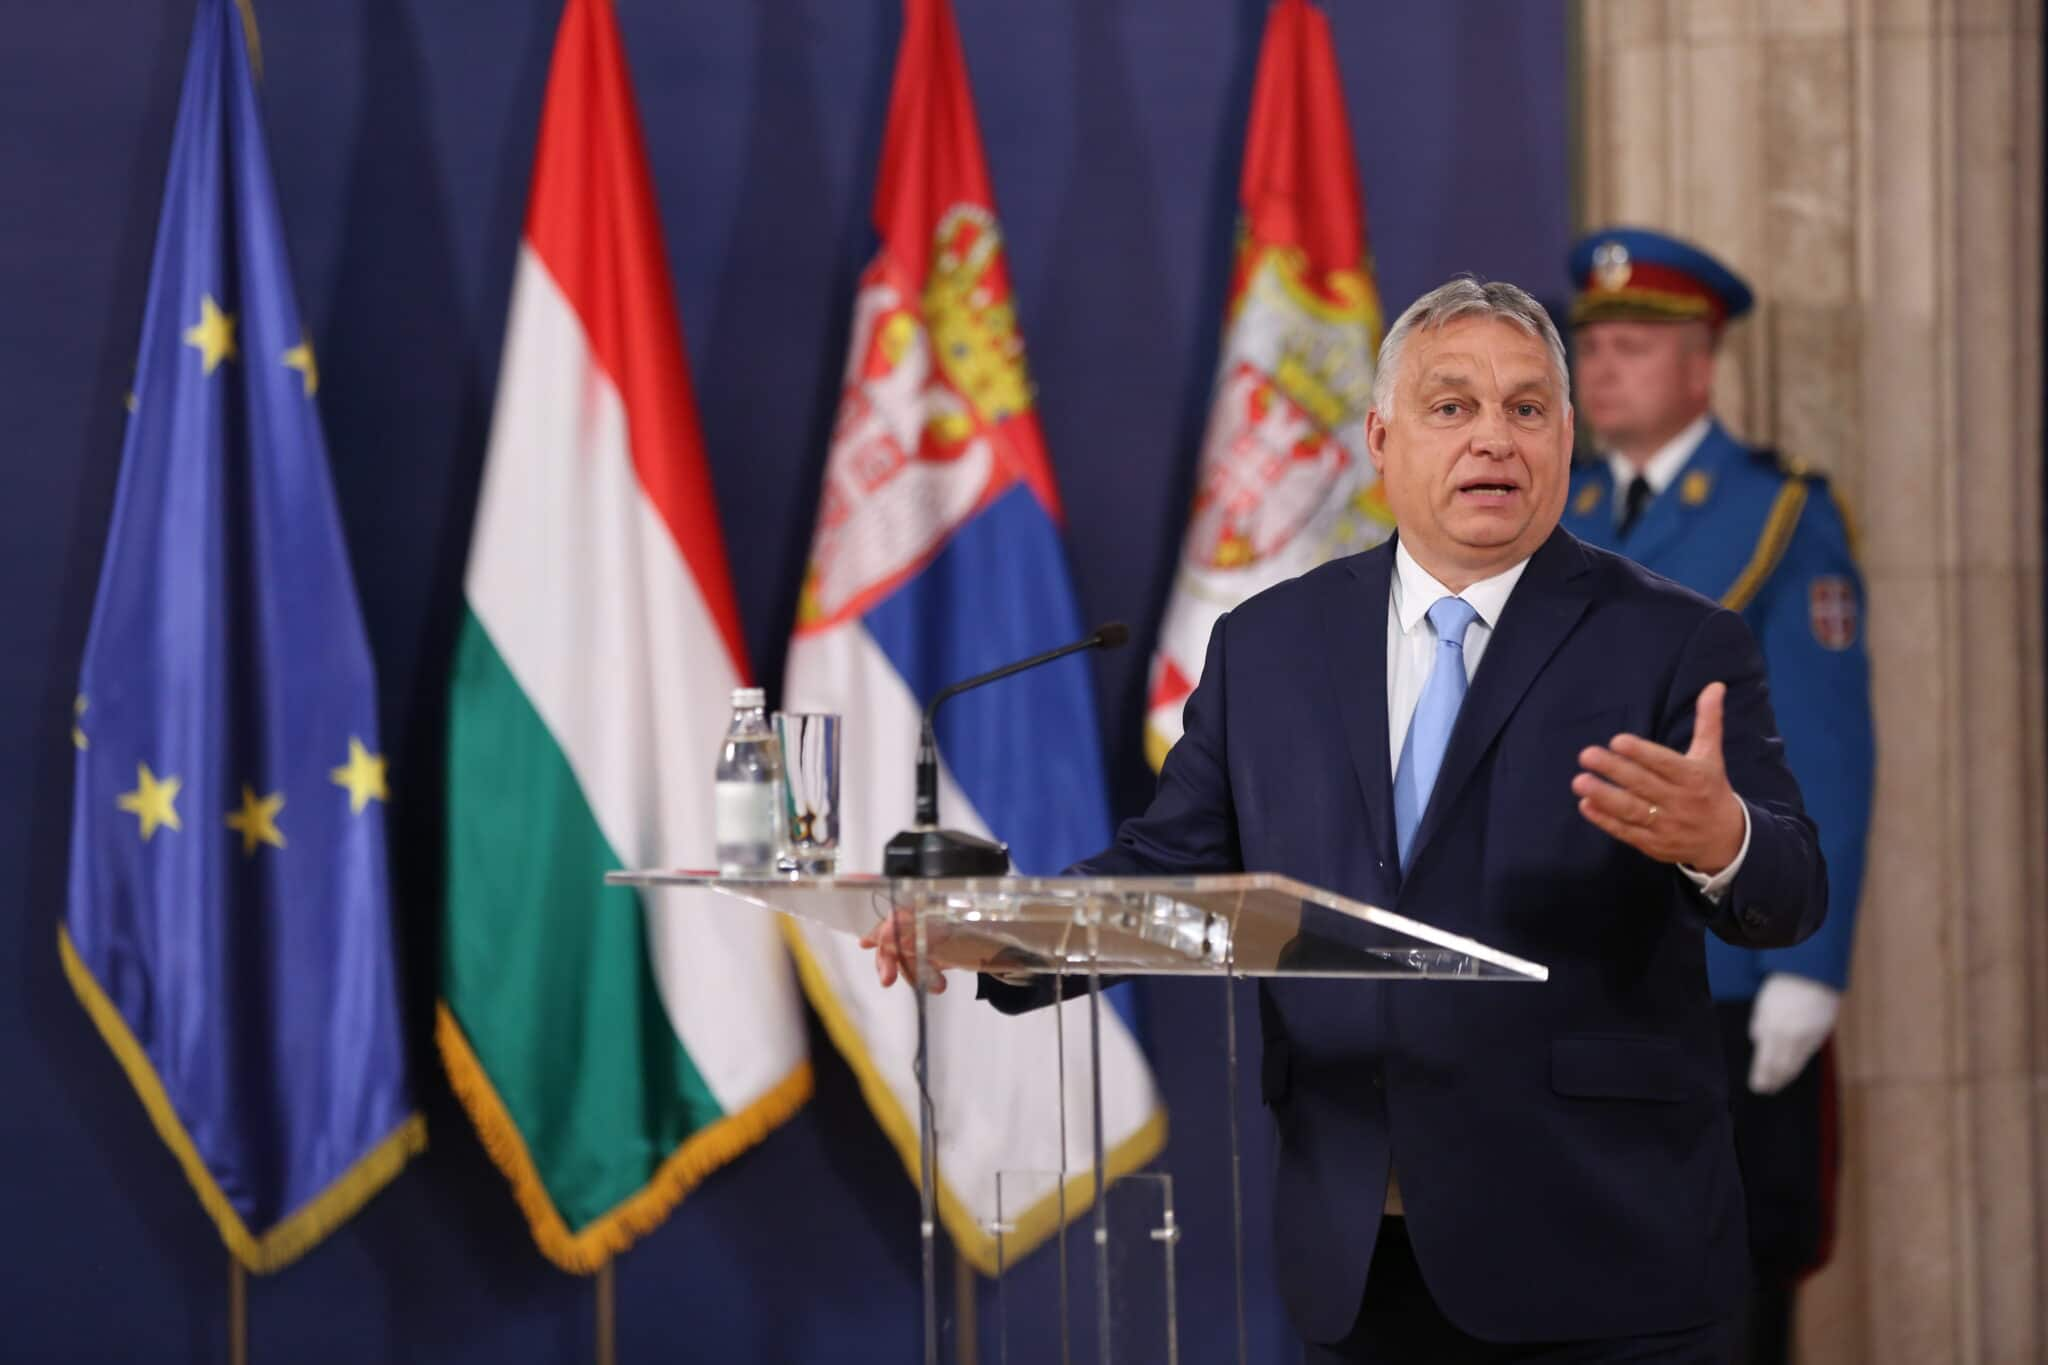 EU staunchly condemns Hungary's vile anti-LGBT+ law as an 'attack on democracy'